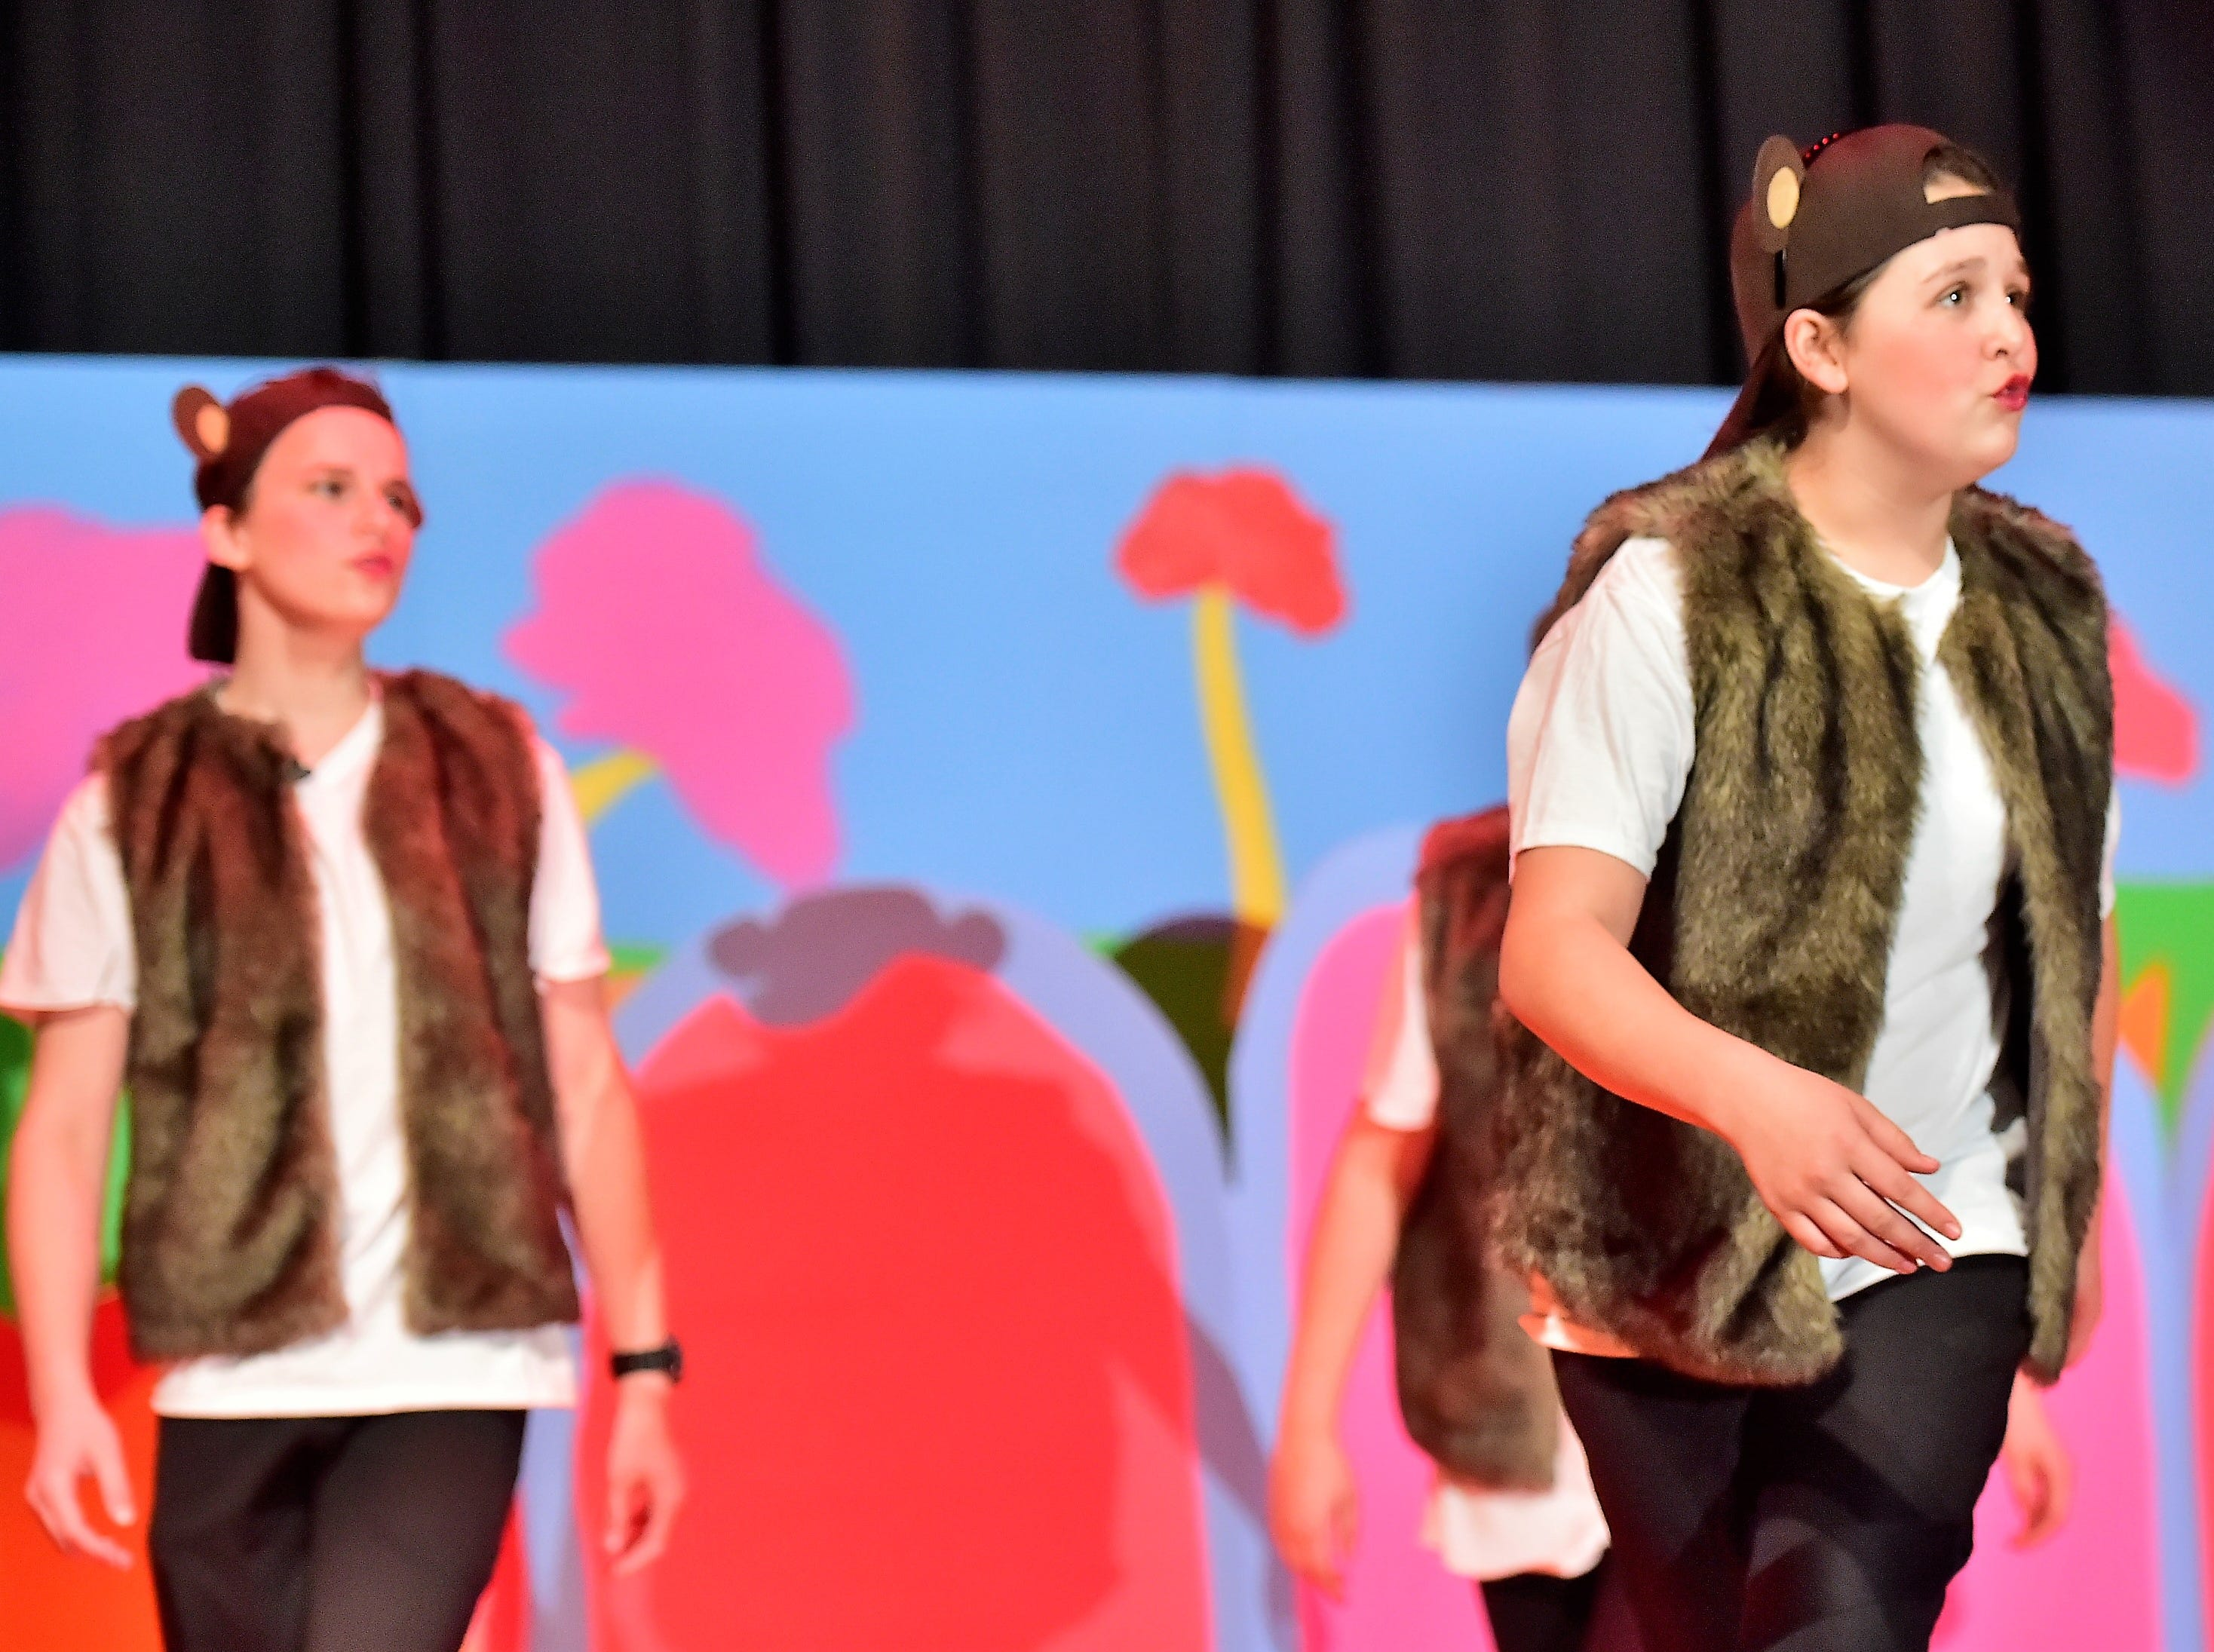 "Taylor McNamara (front) and Ethan Wetherhold (back) perform with the other Whickersham Monkeys during a dress rehearsal for ""Seussical Jr."" on Feb. 19, 2019. Chambersburg Area Middle School South Drama Club will present the production at 7 p.m. Friday and Saturday, Feb. 22 and 23, and 2 p.m. Saturday and Sunday, Feb. 23 and 24, in the CAMS South auditorium. For tickets, $8, go to www.showtix4u.com and look up CAMS South Seussical."